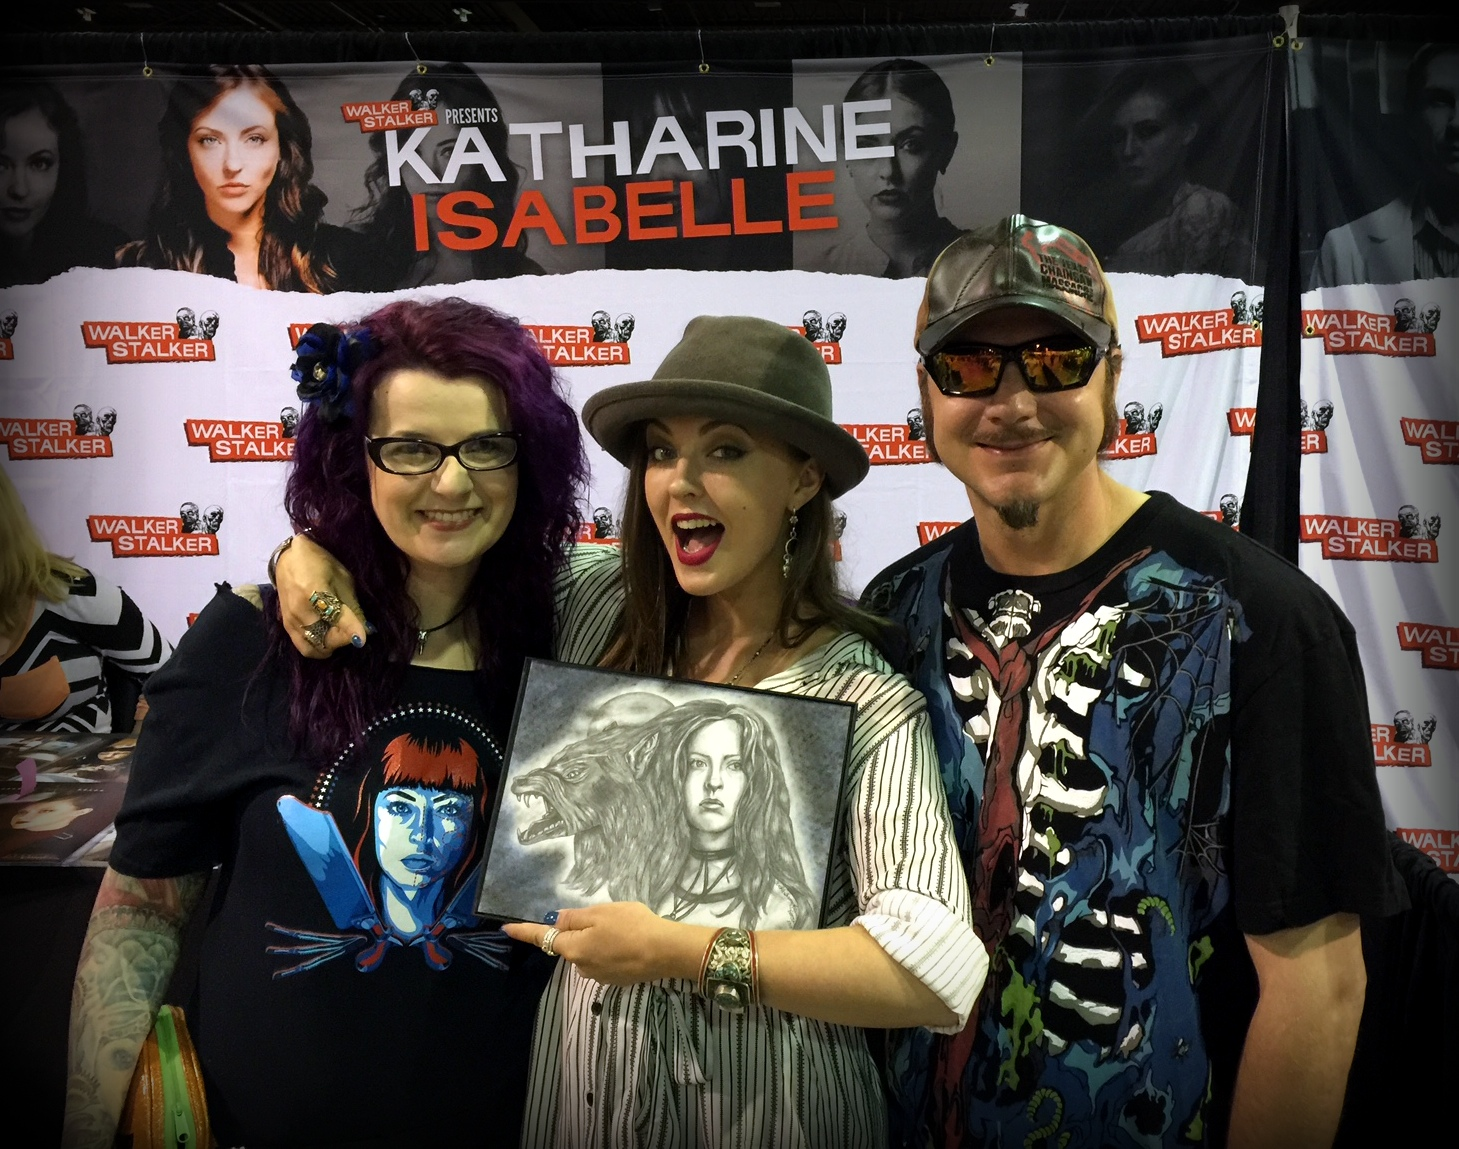 Gifting to Katharine Isabelle